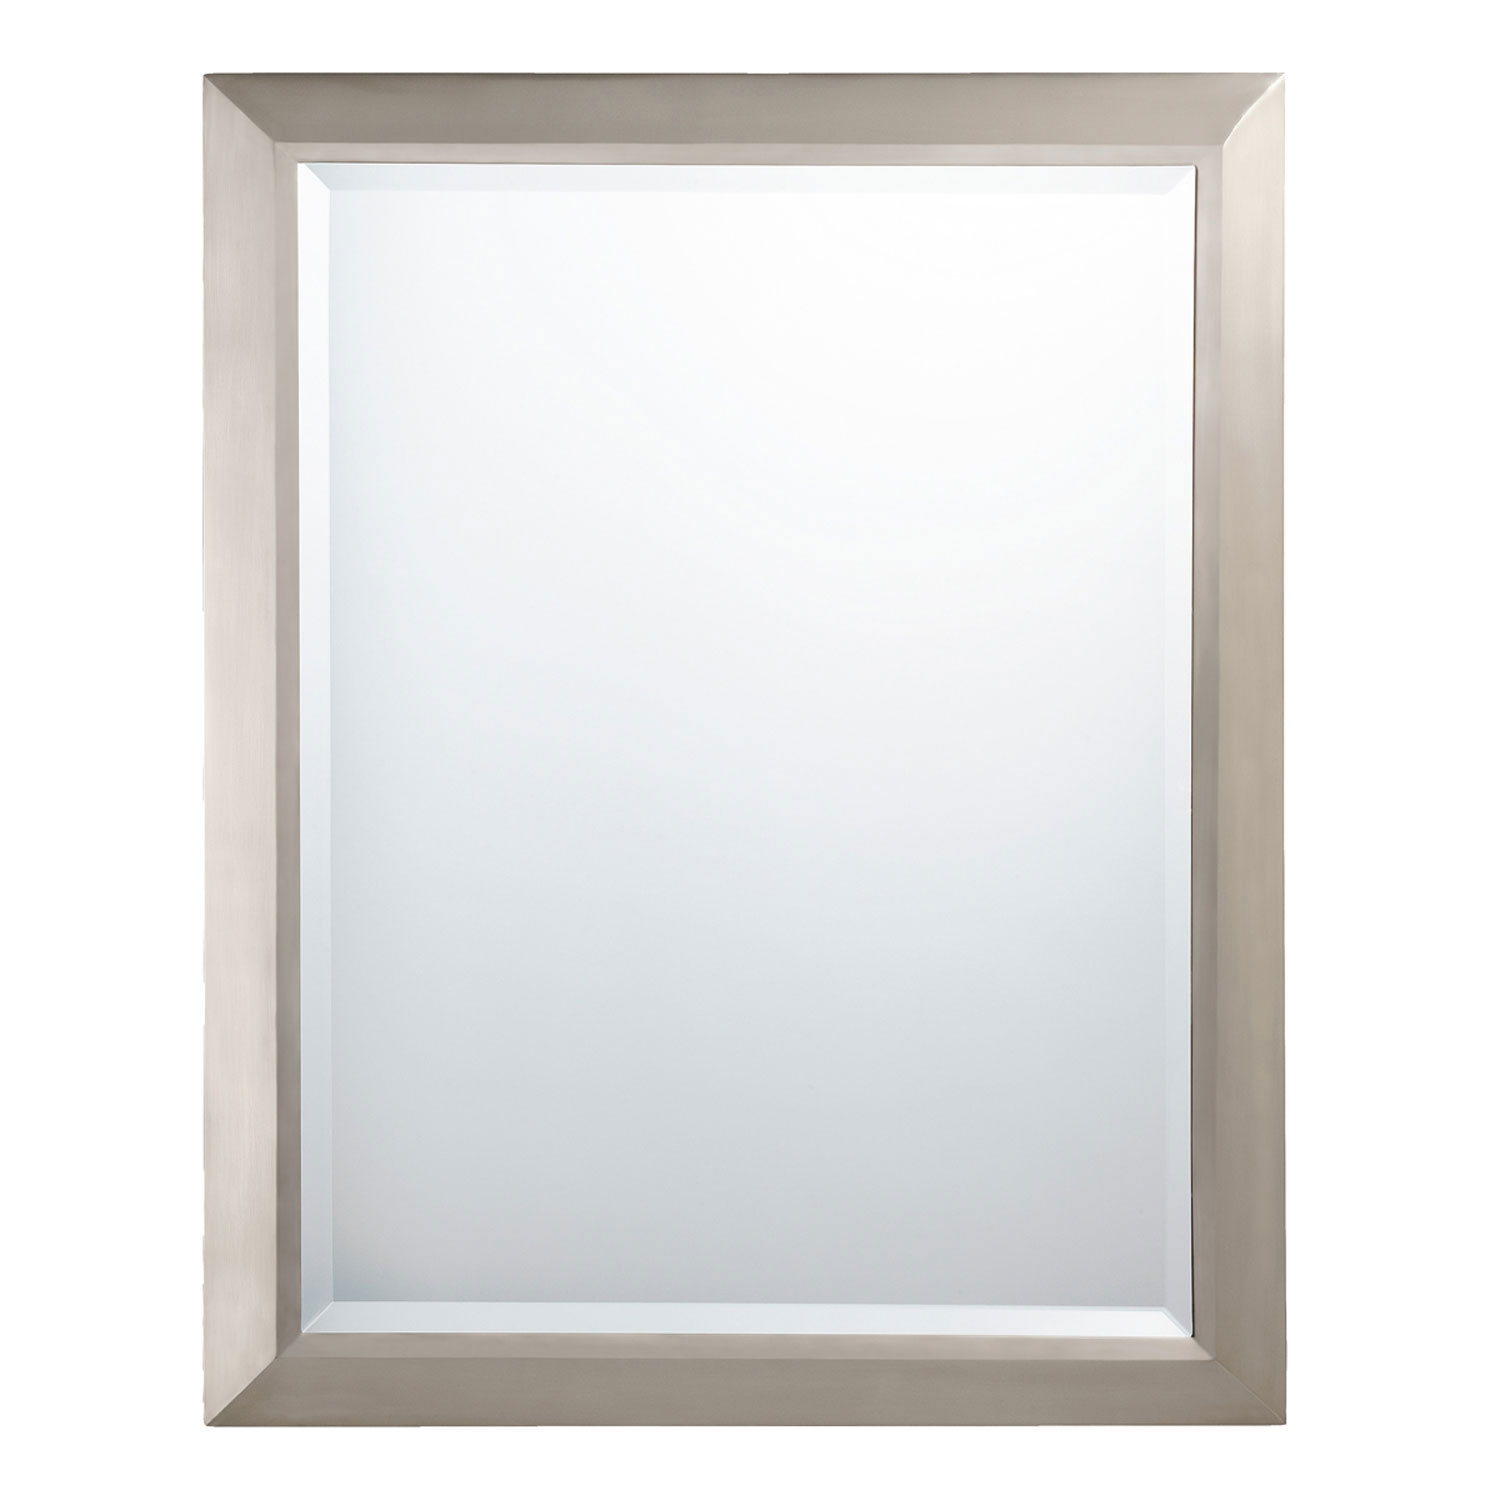 Wall Mirrors Bathroom Mirrors Bellacor With Square Frameless Mirror (Image 15 of 15)